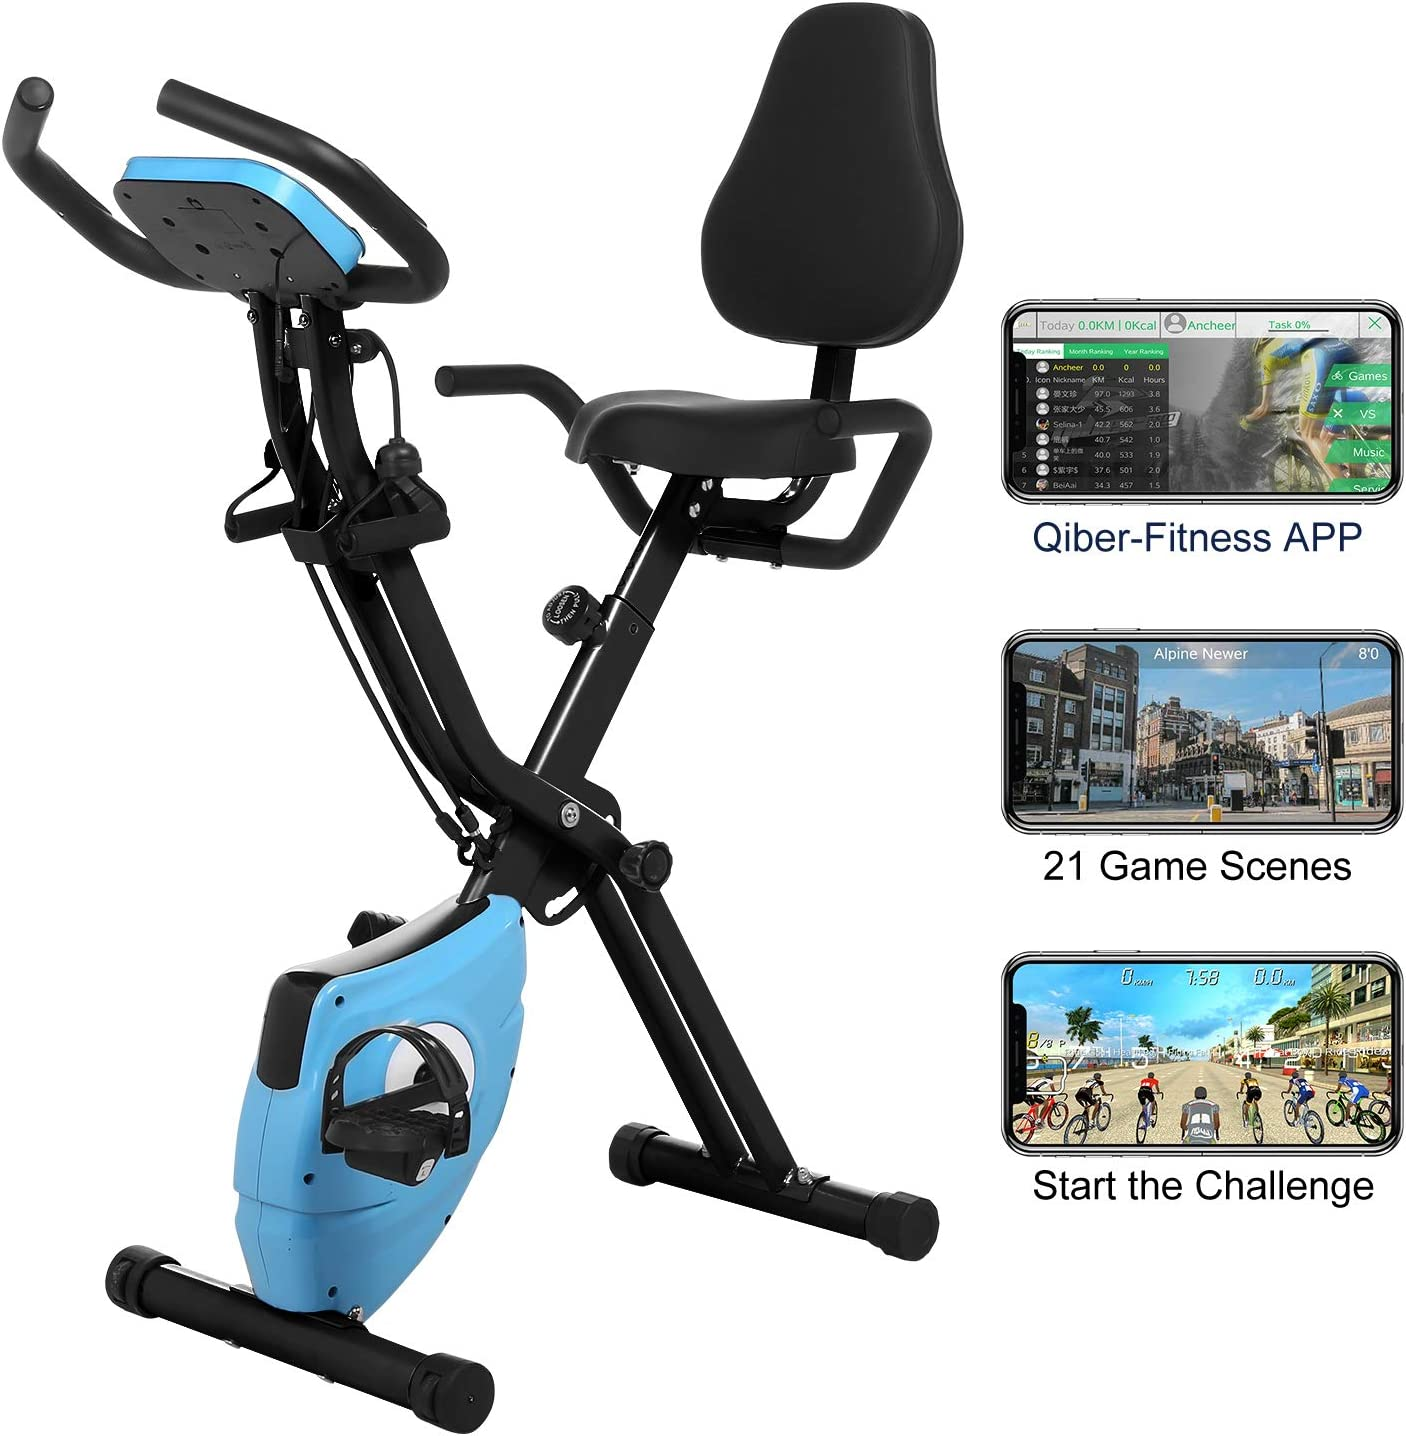 ANCHEER As Seen On TV Cycle 3-in-1 Stationary Bike – Folding Indoor Exercise Bike with APP and Heart Monitor – Perfect Home Exercise Machine for Cardio Blue